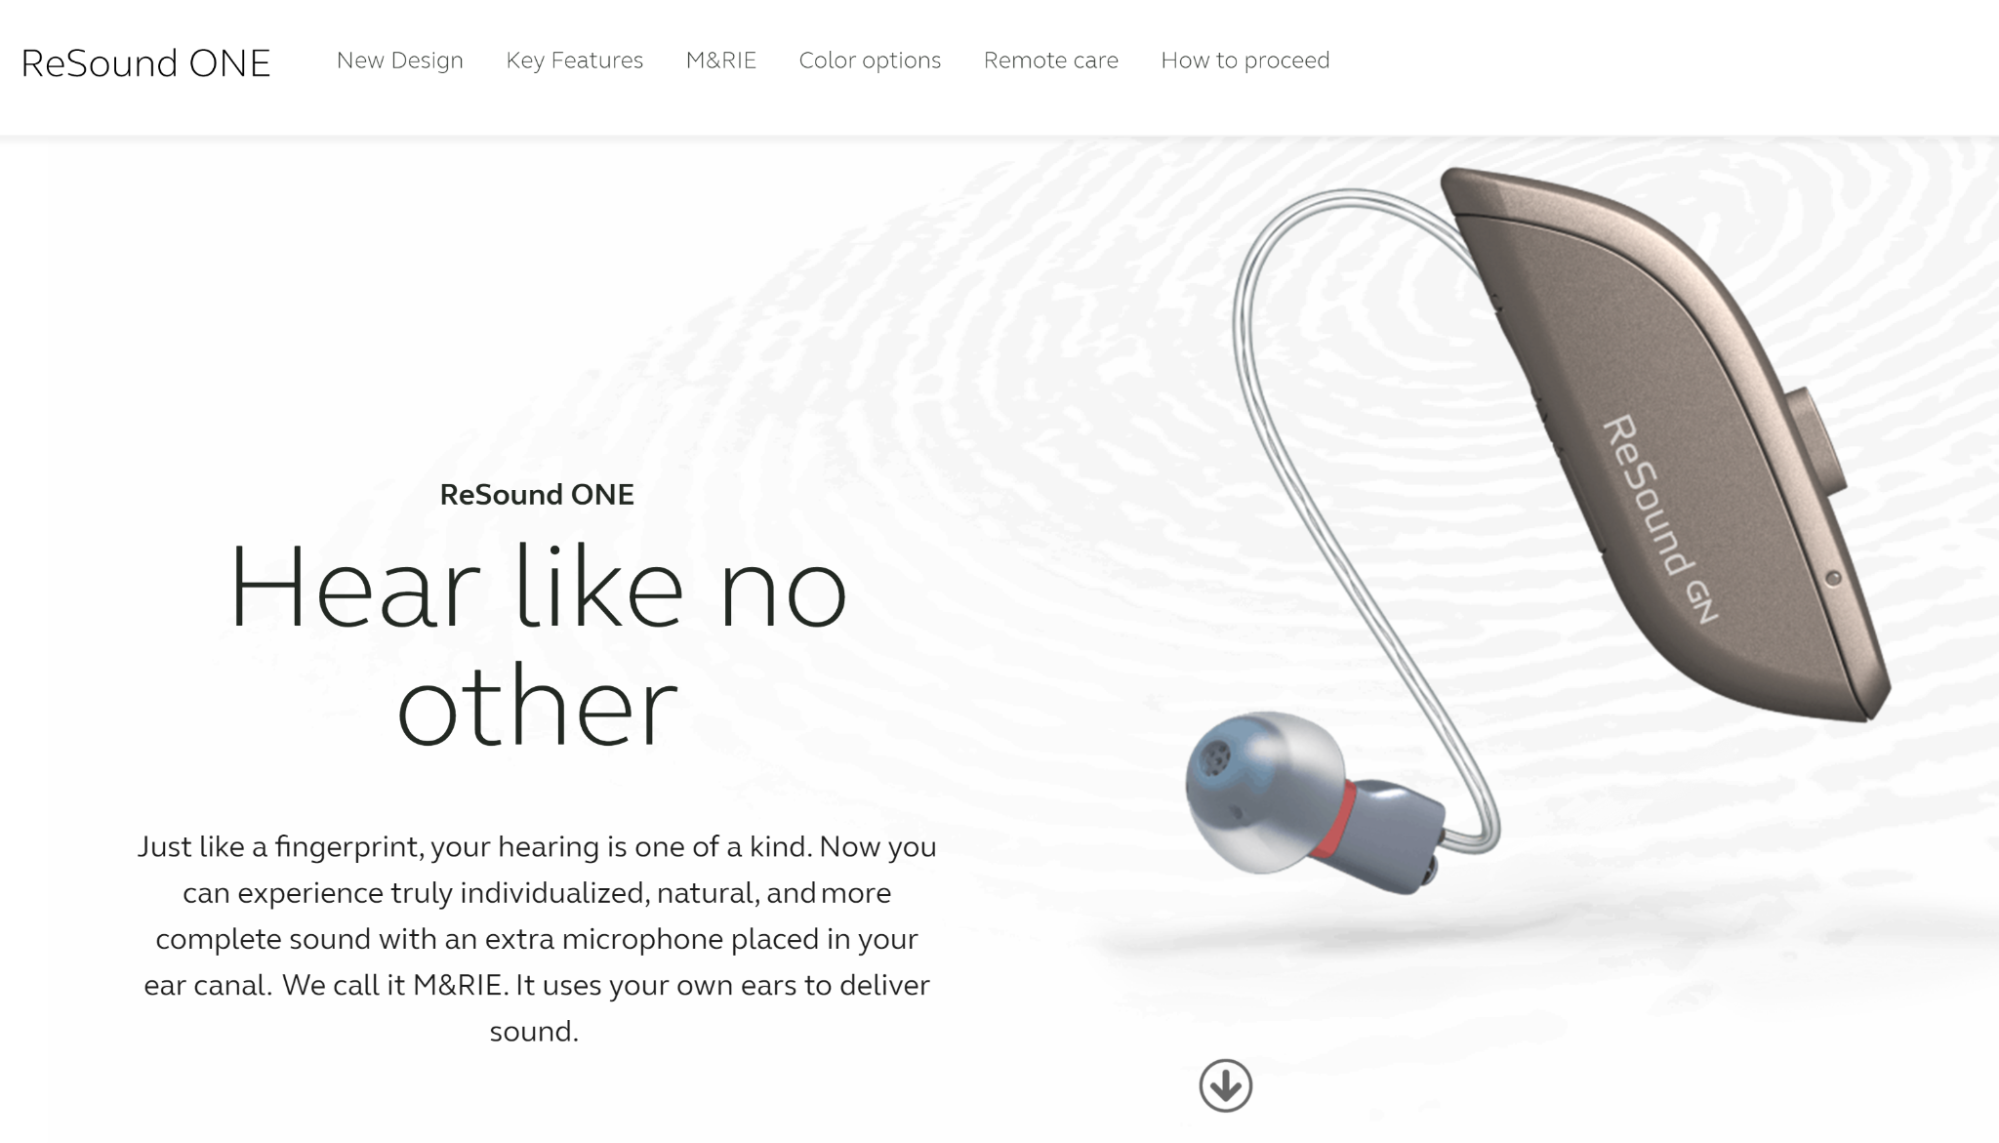 Hearing Care Solutions: ReSound ONE preview description